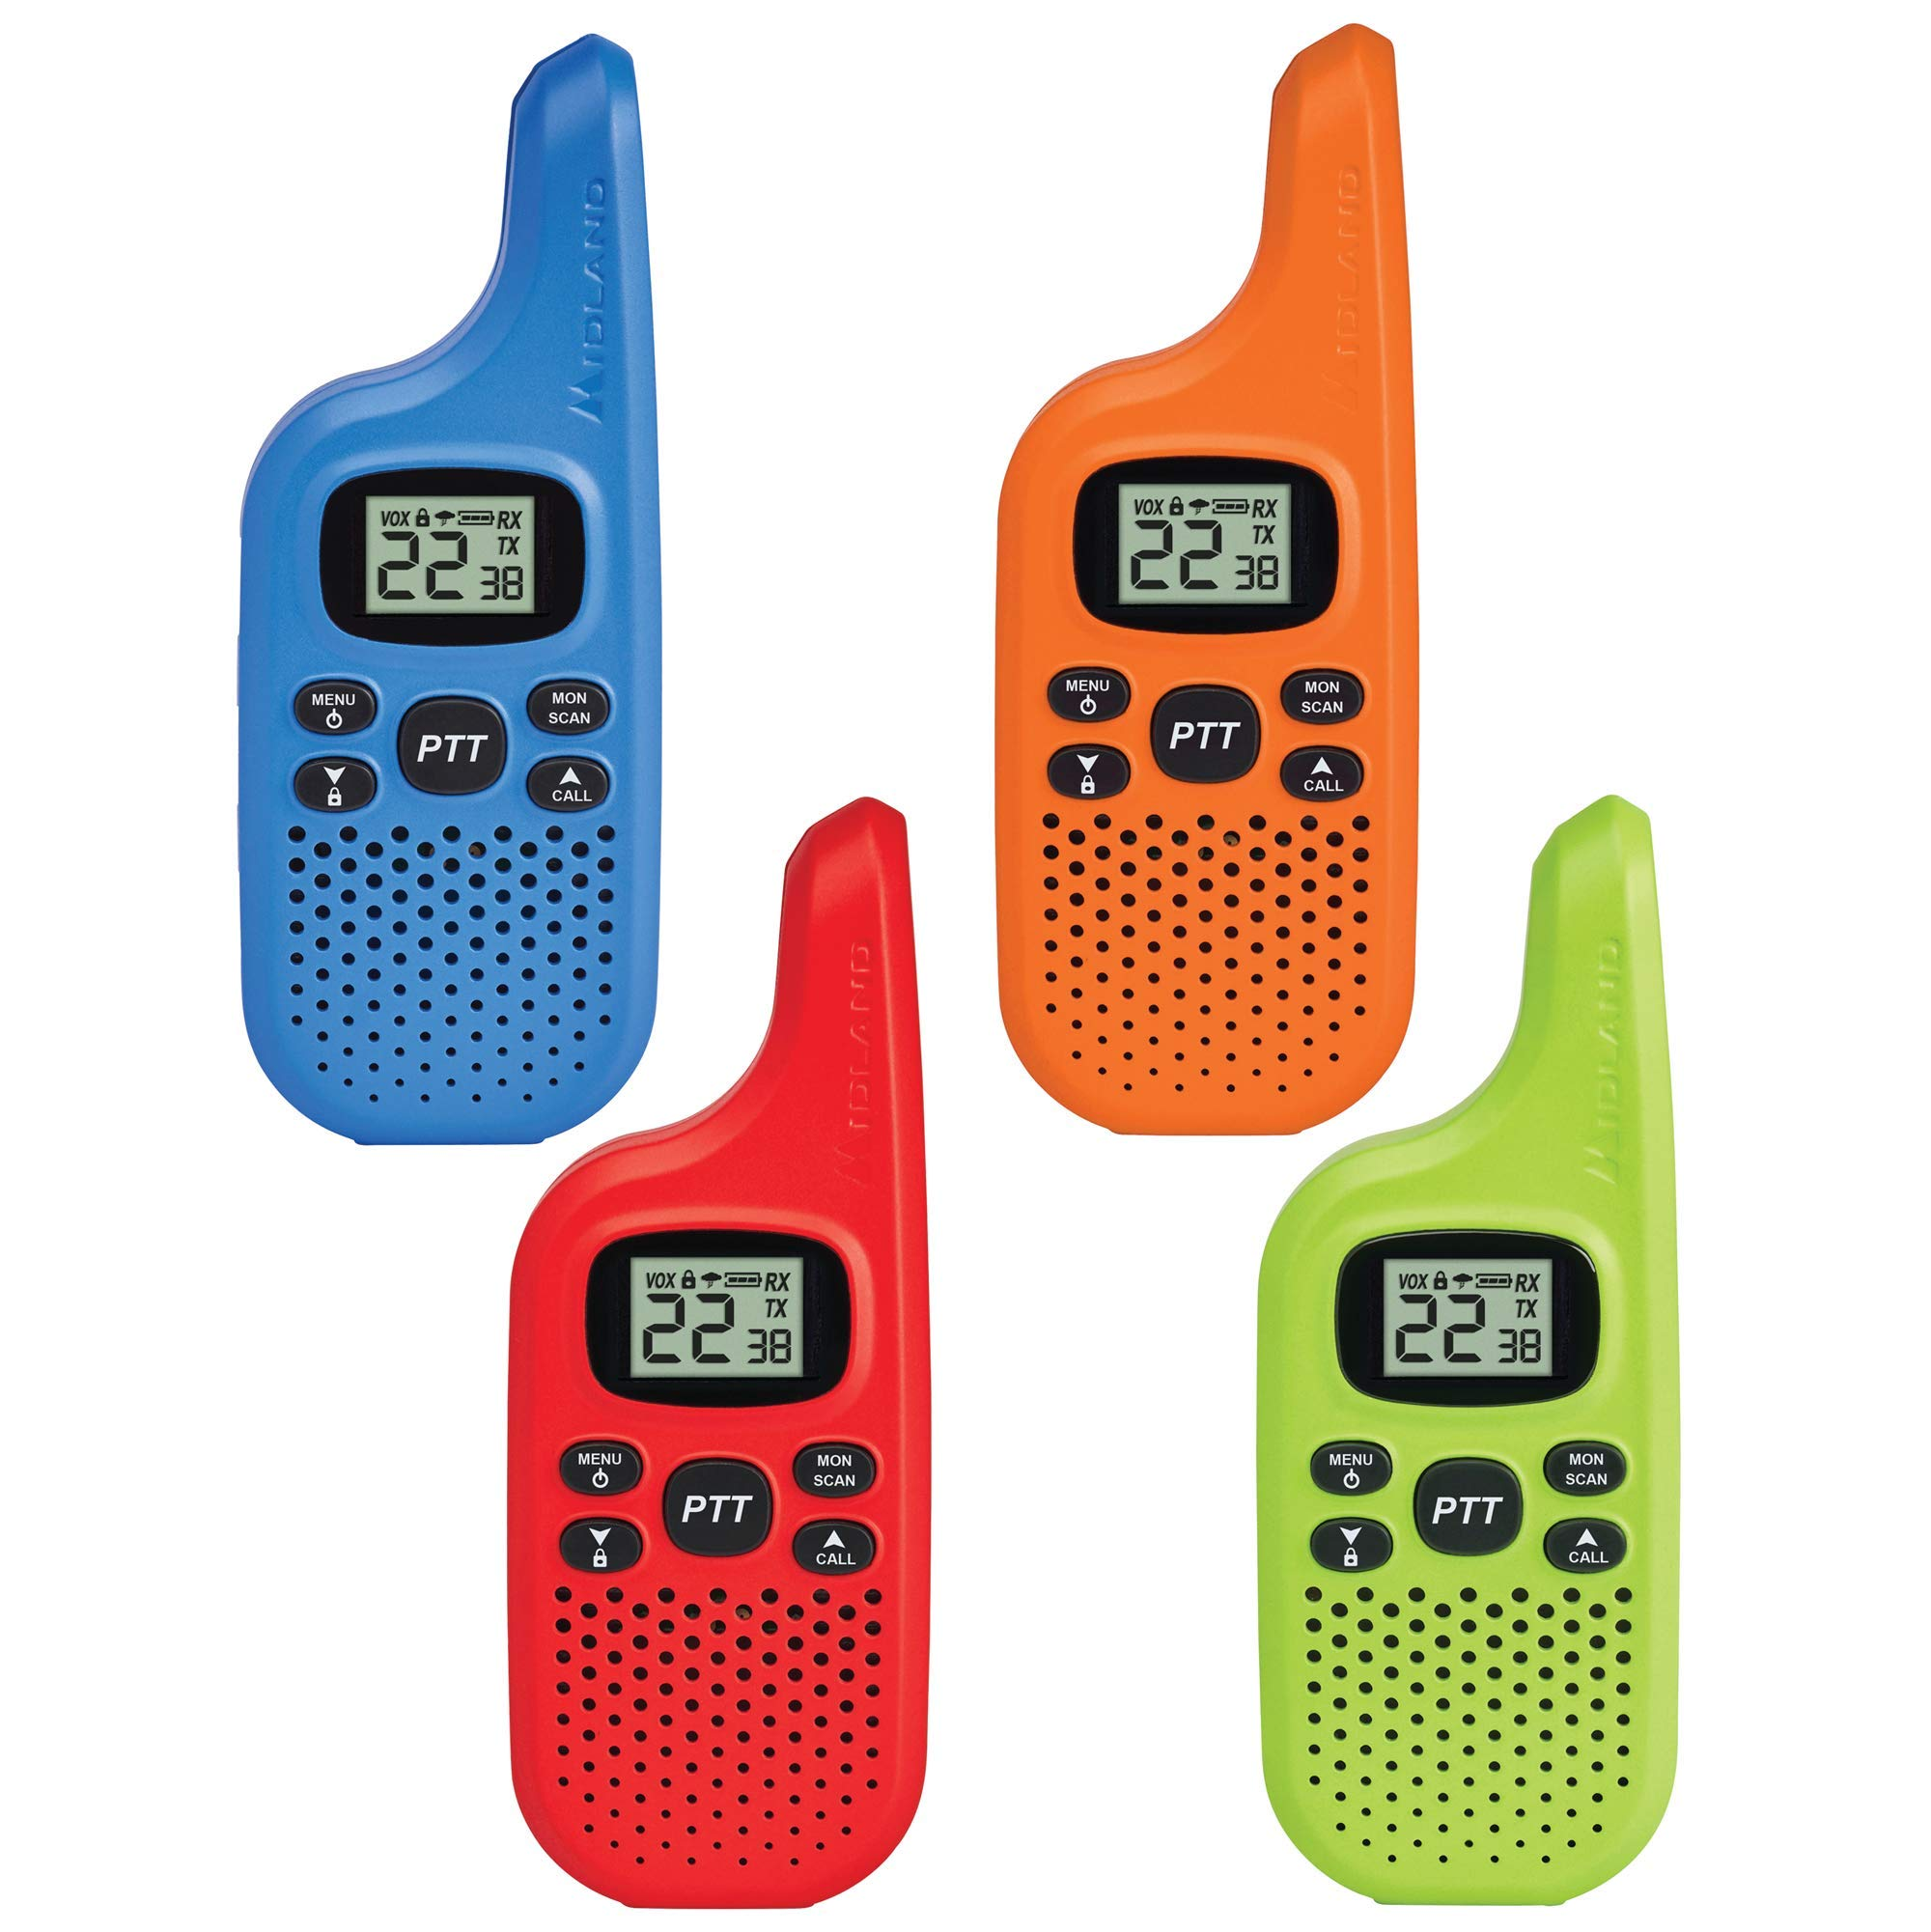 Midland - X-TALKER T20X4, 22 Channel FRS Walkie Talkie - Up to 16 Mile Range Two-Way Radio, 38 Privacy Codes, NOAA Weather Alert (4 Pack) (Multi-Color) by Midland